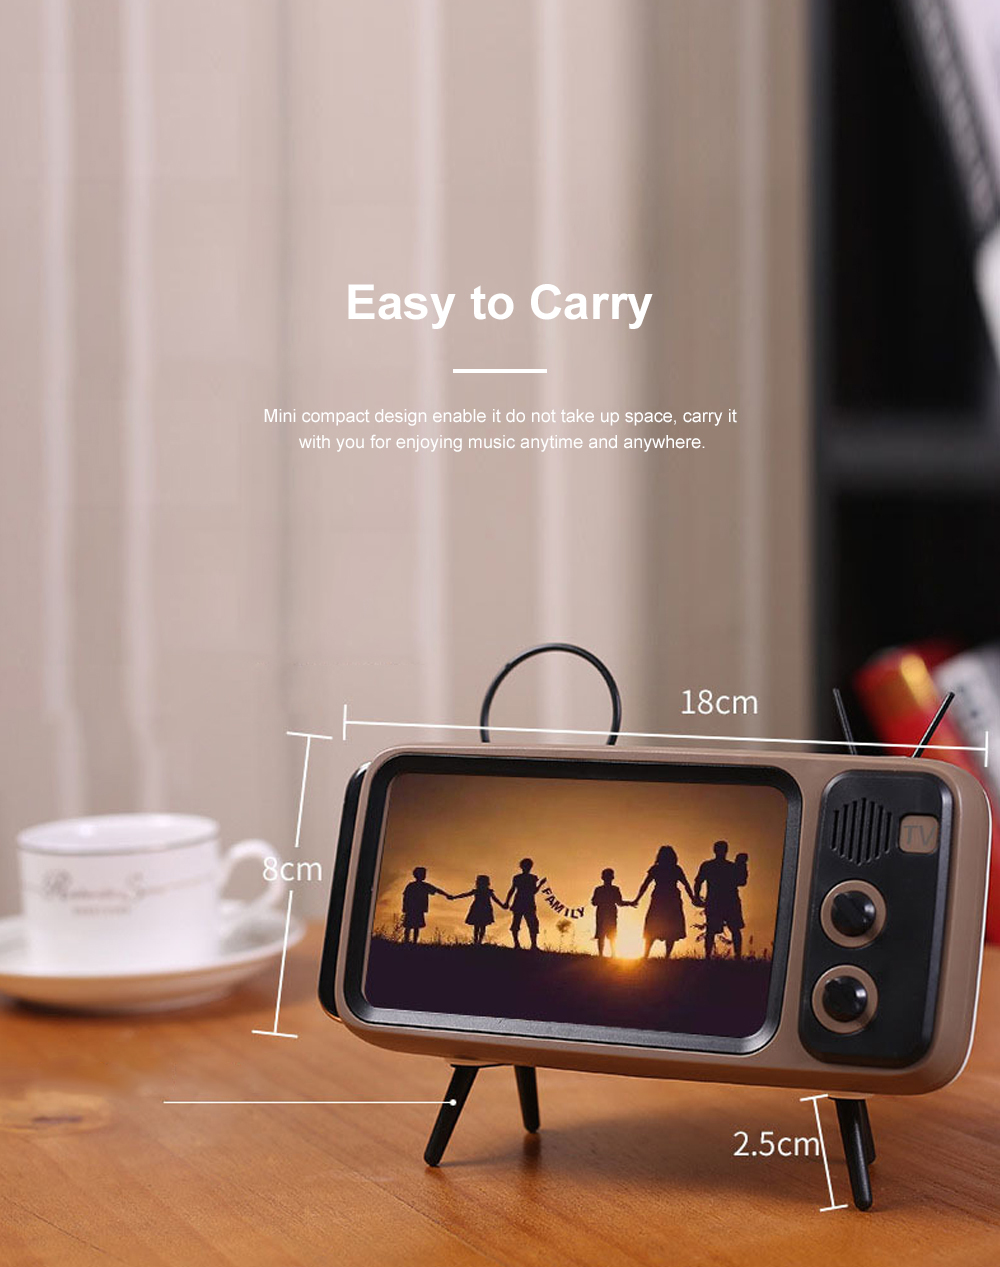 Retro Bluetooth Speaker Portable Wireless Stereo Speaker Old Fashioned Classic TV Style Music Player Phone Stand Mount 2